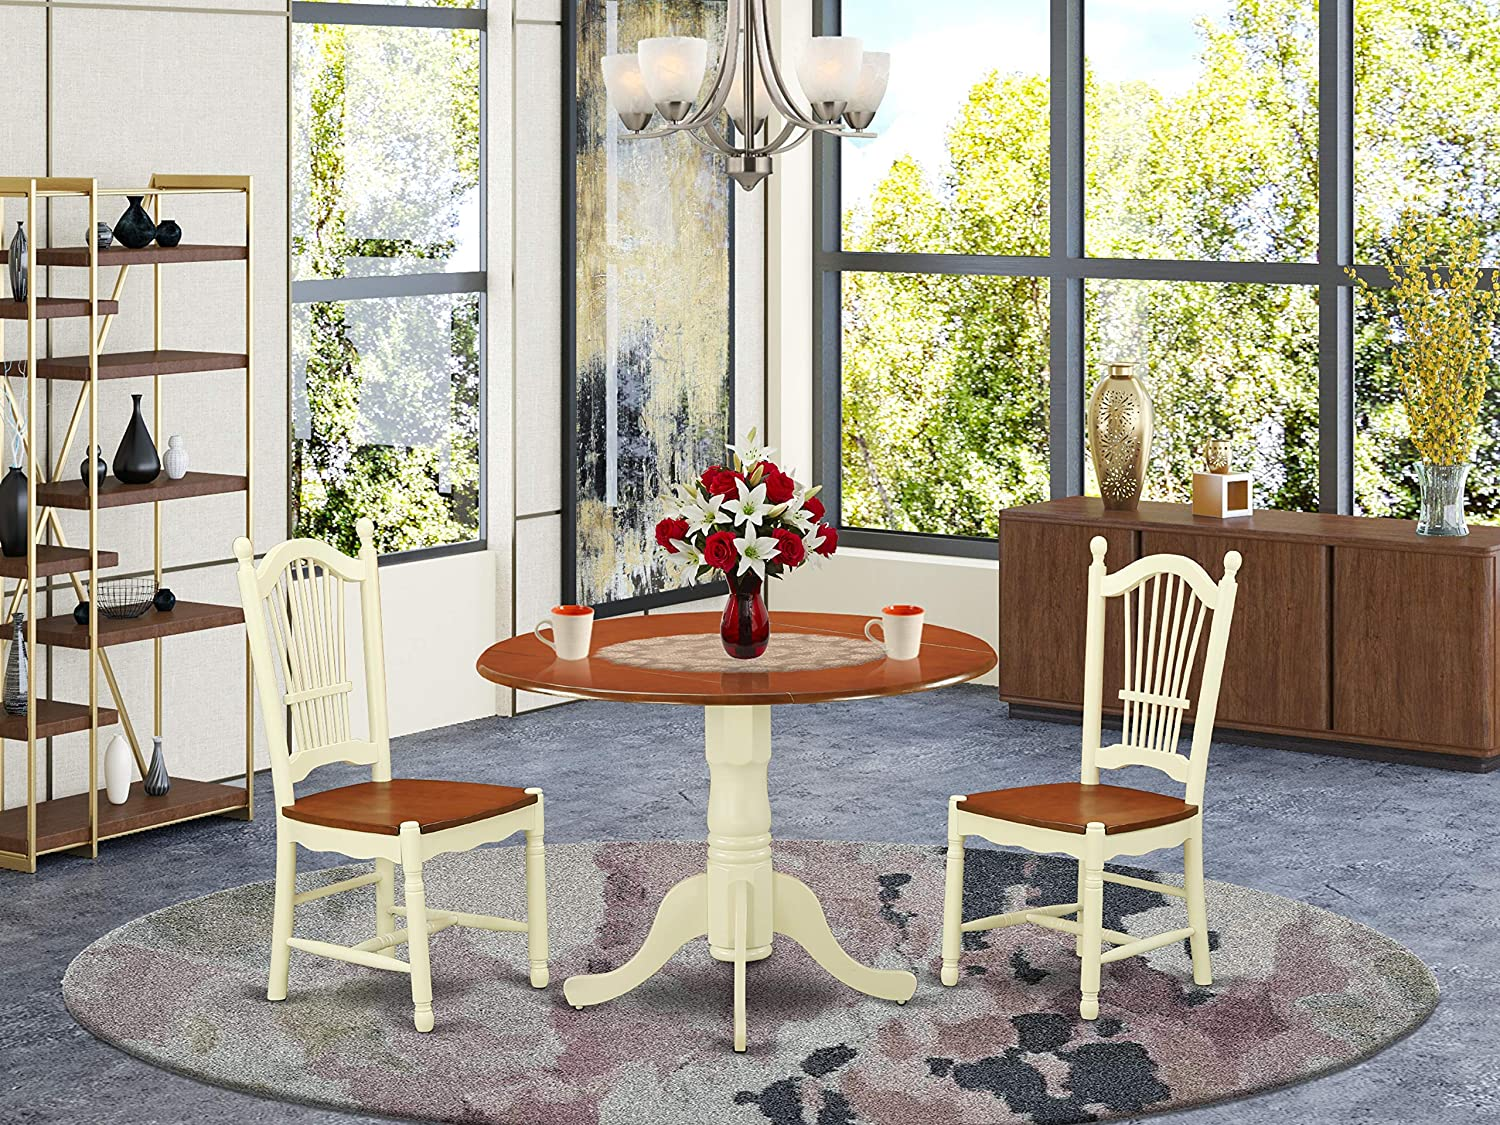 Amazon Com 3 Pc Kitchen Dinette Set Kitchen Dinette Table And 2 Kitchen Dining Chairs Furniture Decor